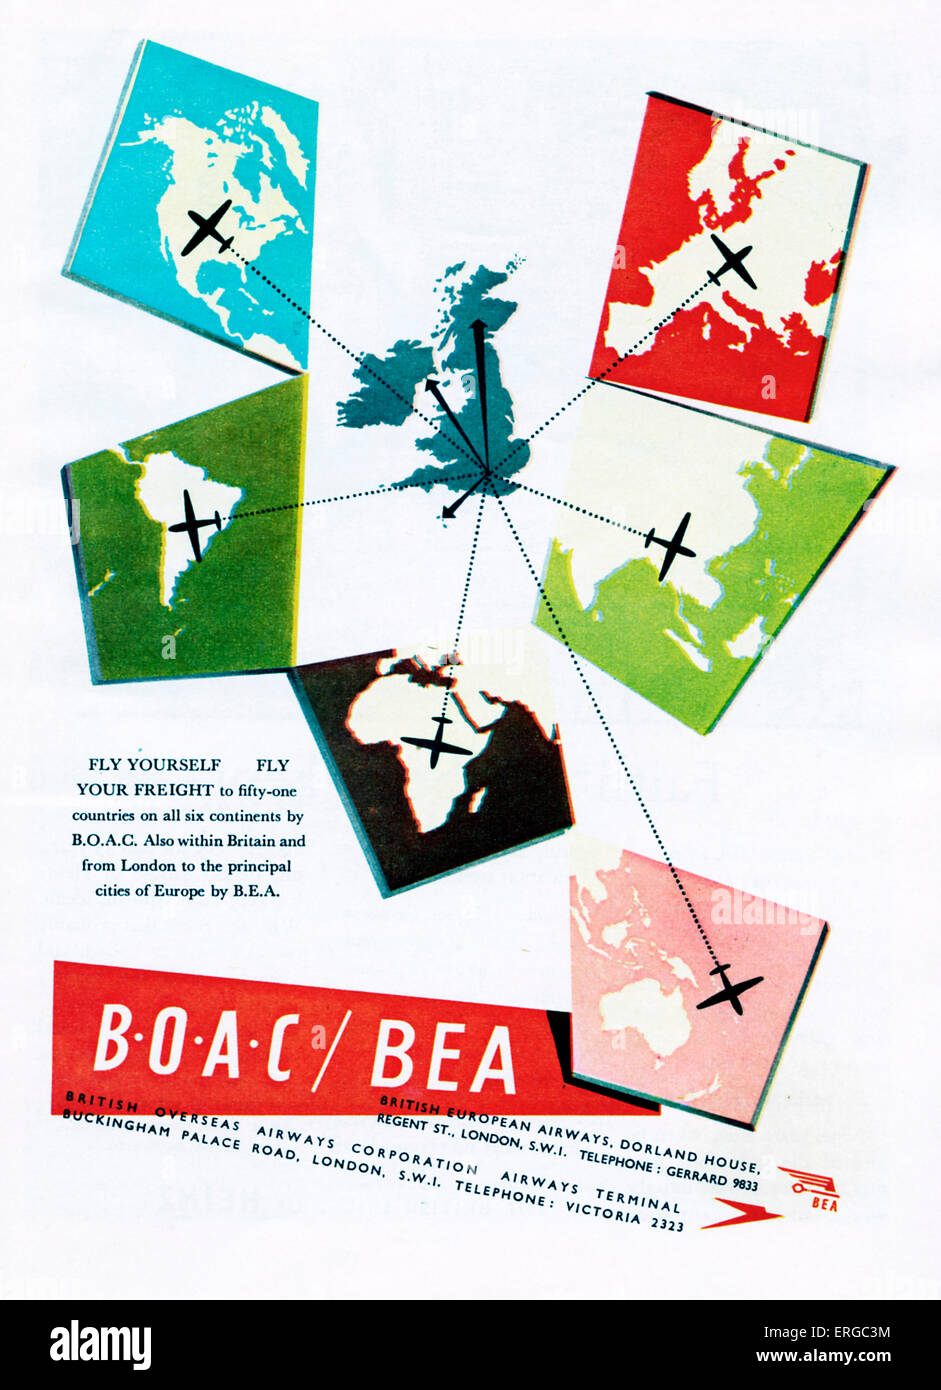 Werbung für BOAC / BEA, 1950er Jahre. BOAC: British Overseas Airways Corporation. BEA: British European Airways. Stockbild